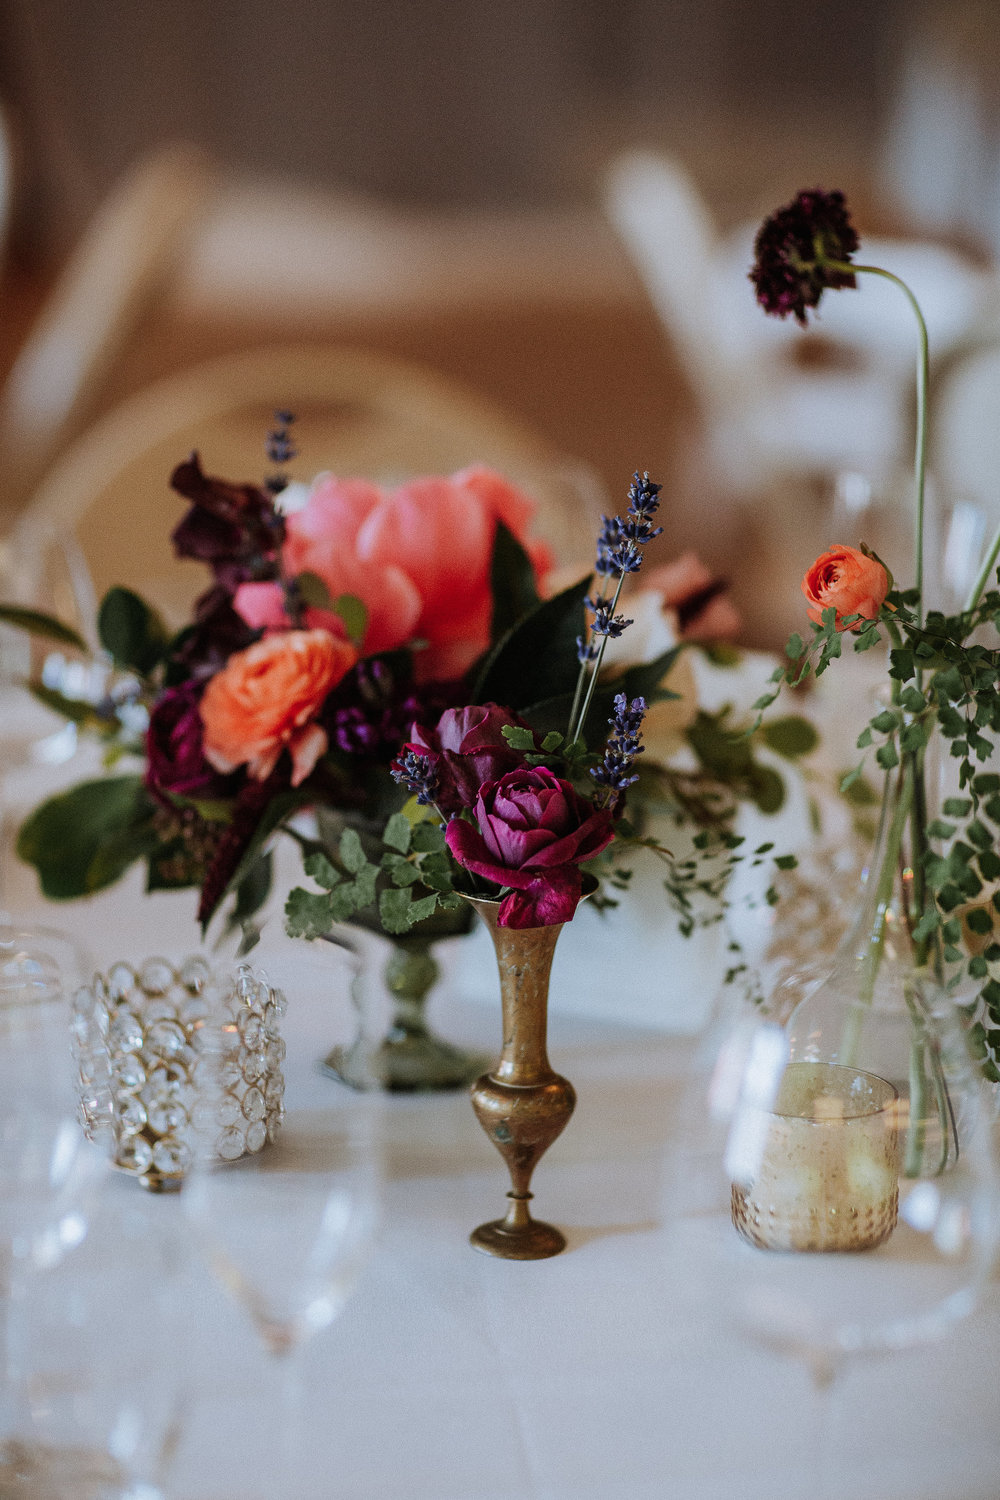 Colorful centerpieces with bud vases, vintage brass, and candles by Venn Floral, photographed by Gretchen Gause in Healsdsburg, California.